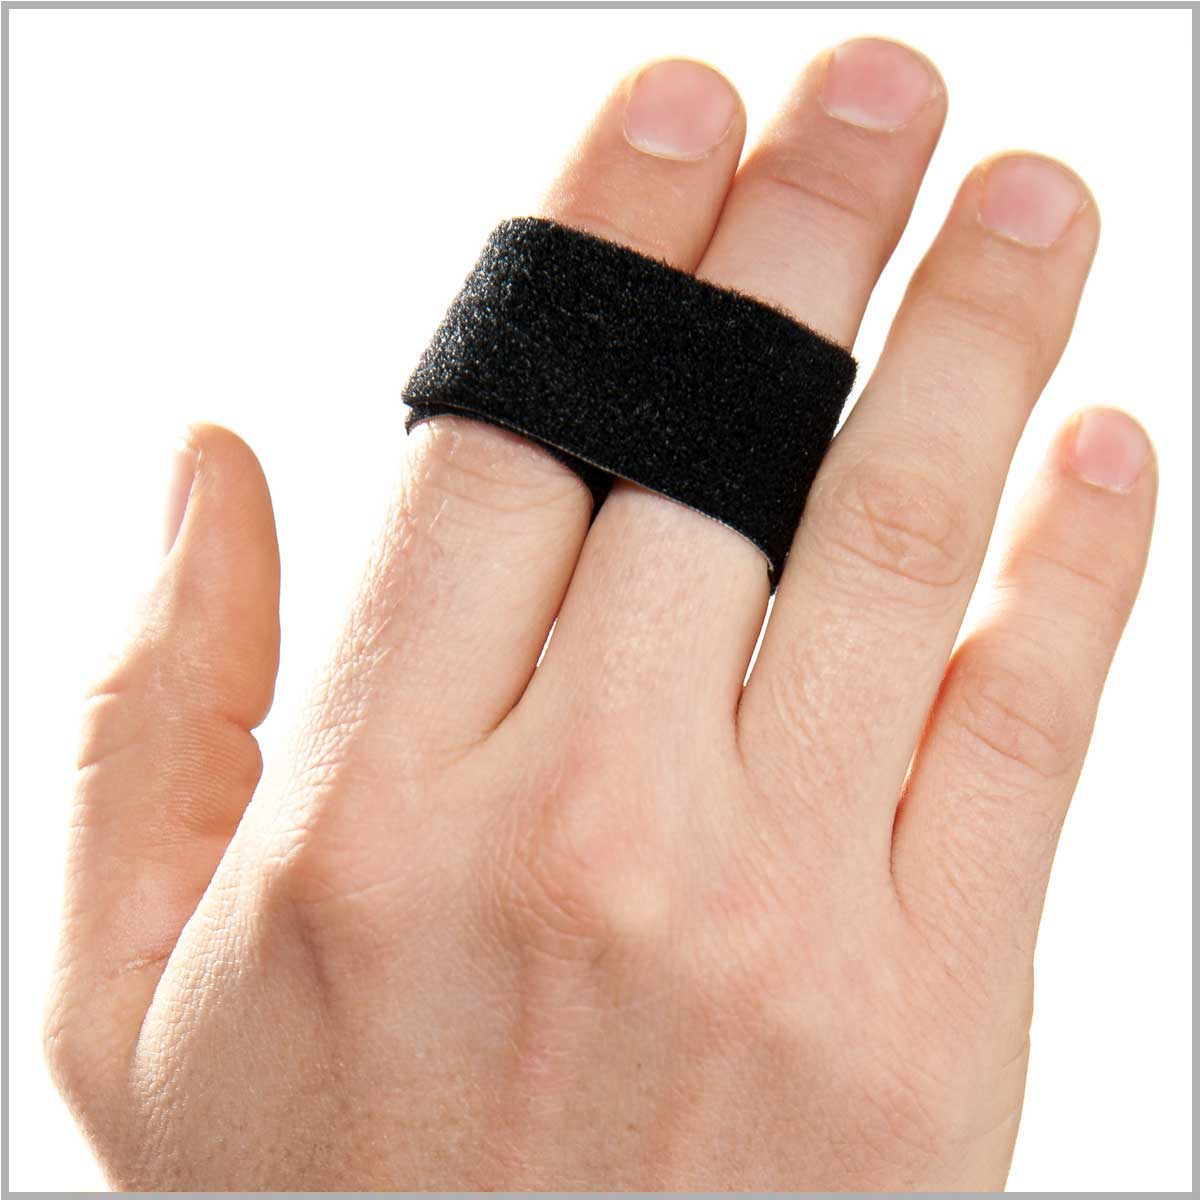 The 1-inch 3pp Buddy Loop is ideal for larger fingers or for playing sports